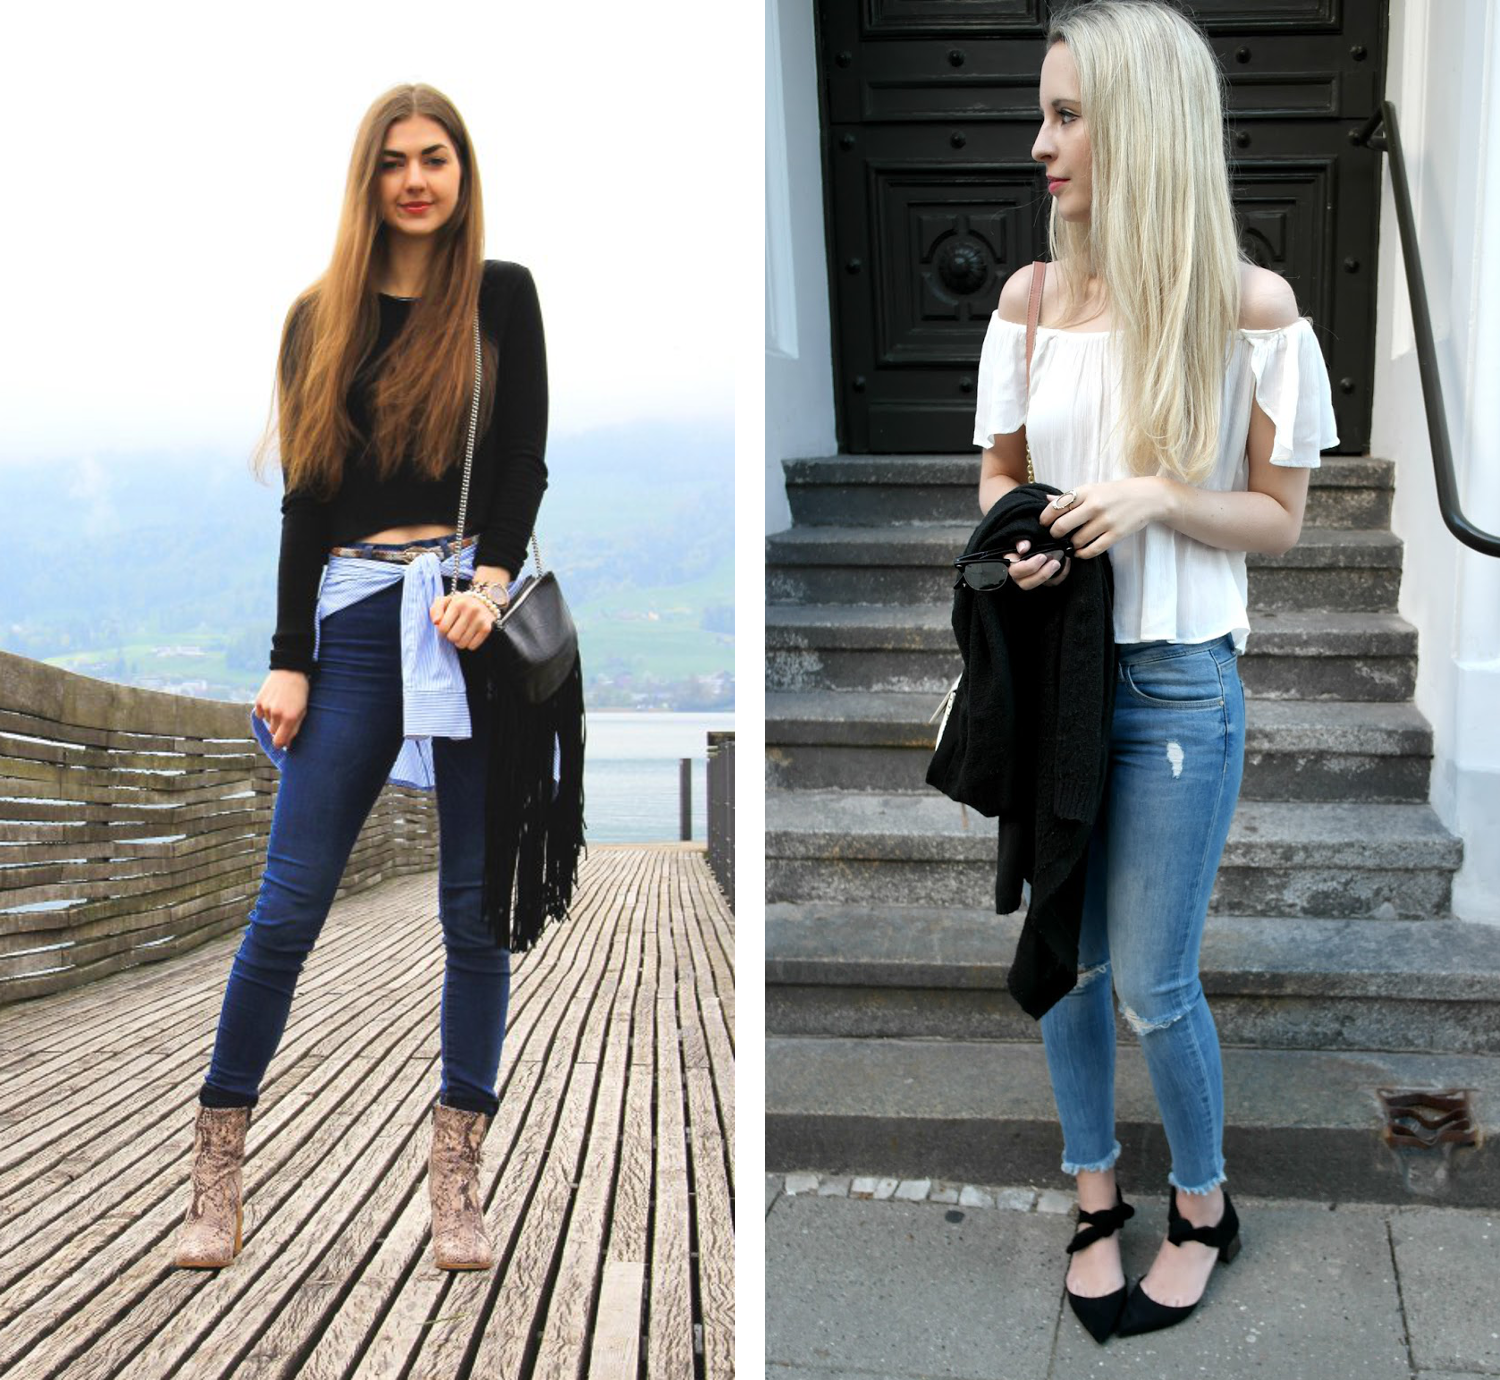 Bezaubernde Nana, bezauberndenana.de, Fashionblog, Denim Lookbook, Denim Trends 2016, Jeans Outfits, Skinny Jeans, Carmitive, carmitiv.com, The Blonde Journey, theblondejourney.com